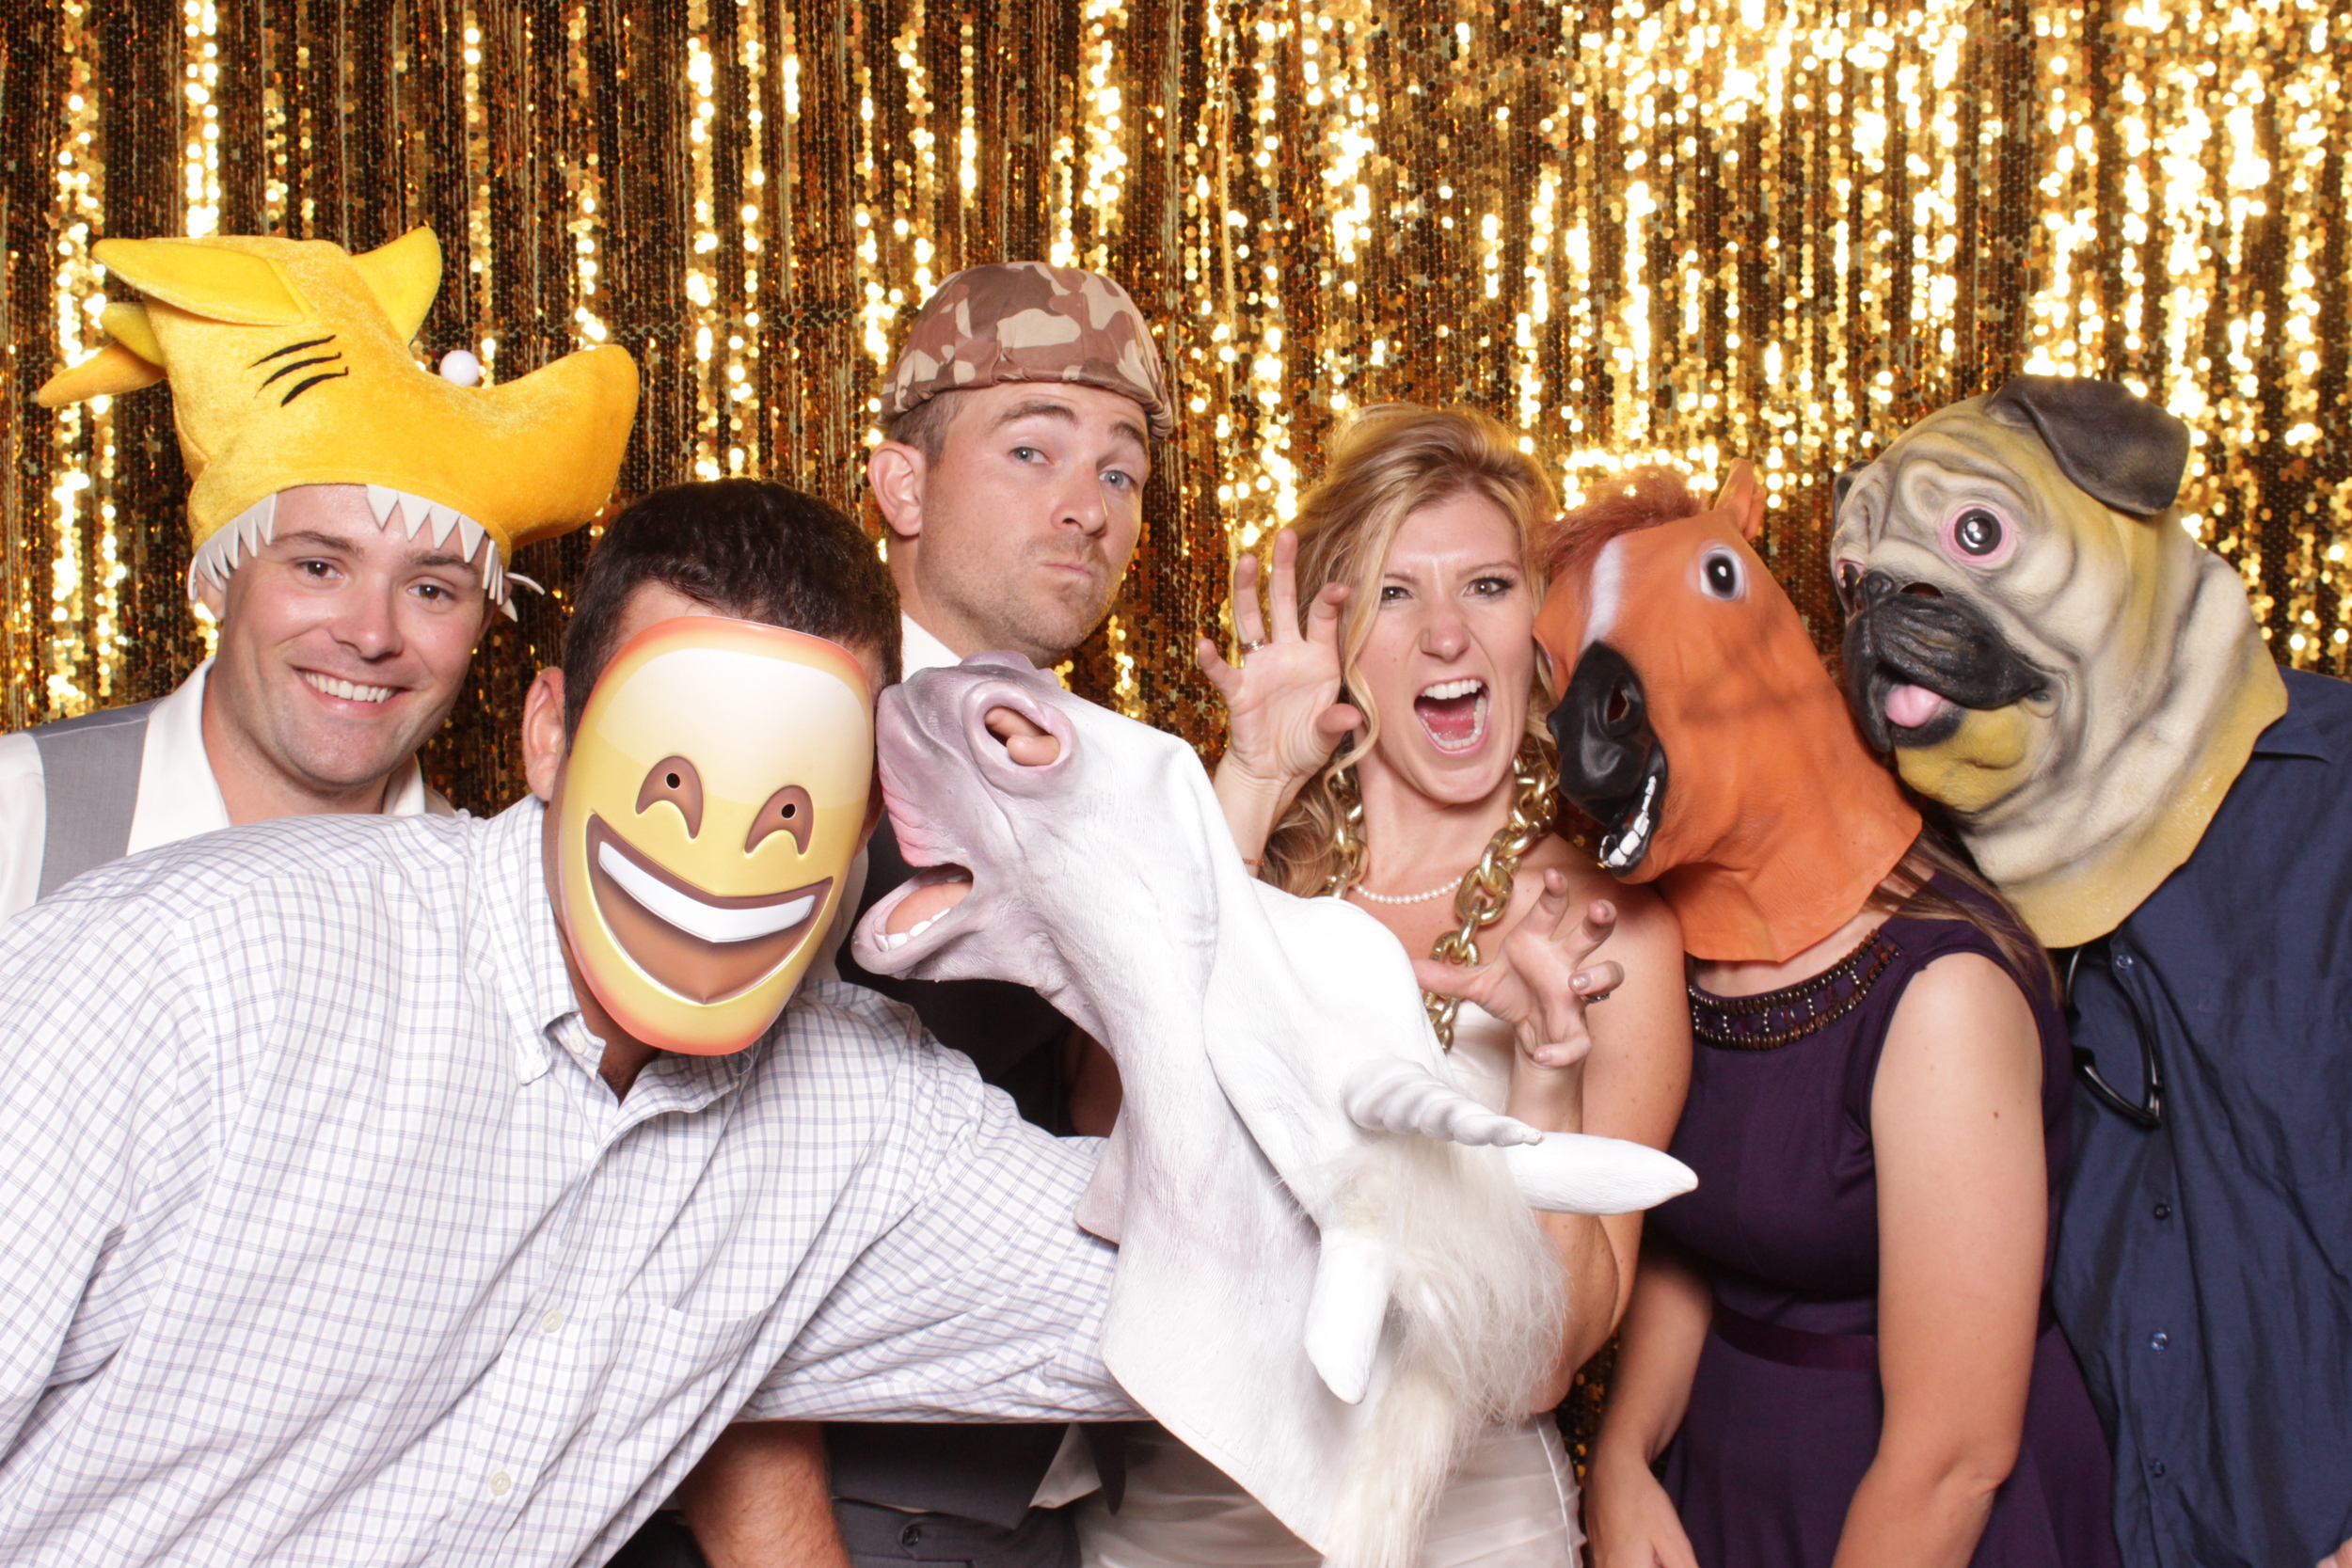 tuscan-ridge-photo-booth-rental-reception-fun